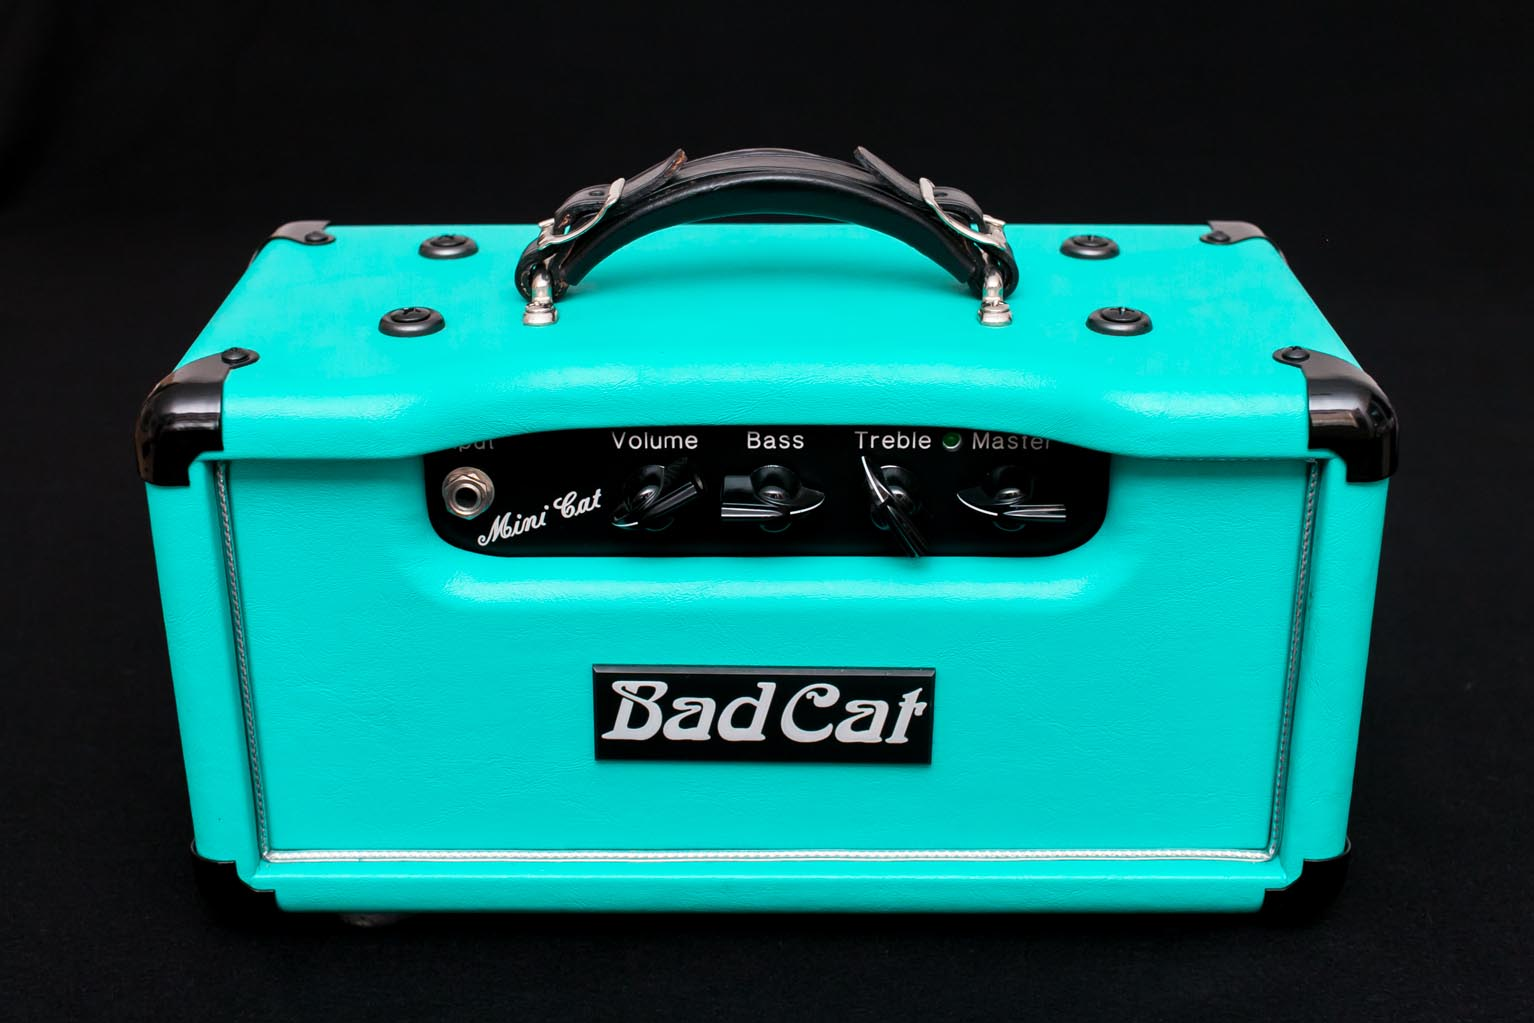 bad cat mini cat 2000 turquoise amp for sale bigfoot guitars. Black Bedroom Furniture Sets. Home Design Ideas